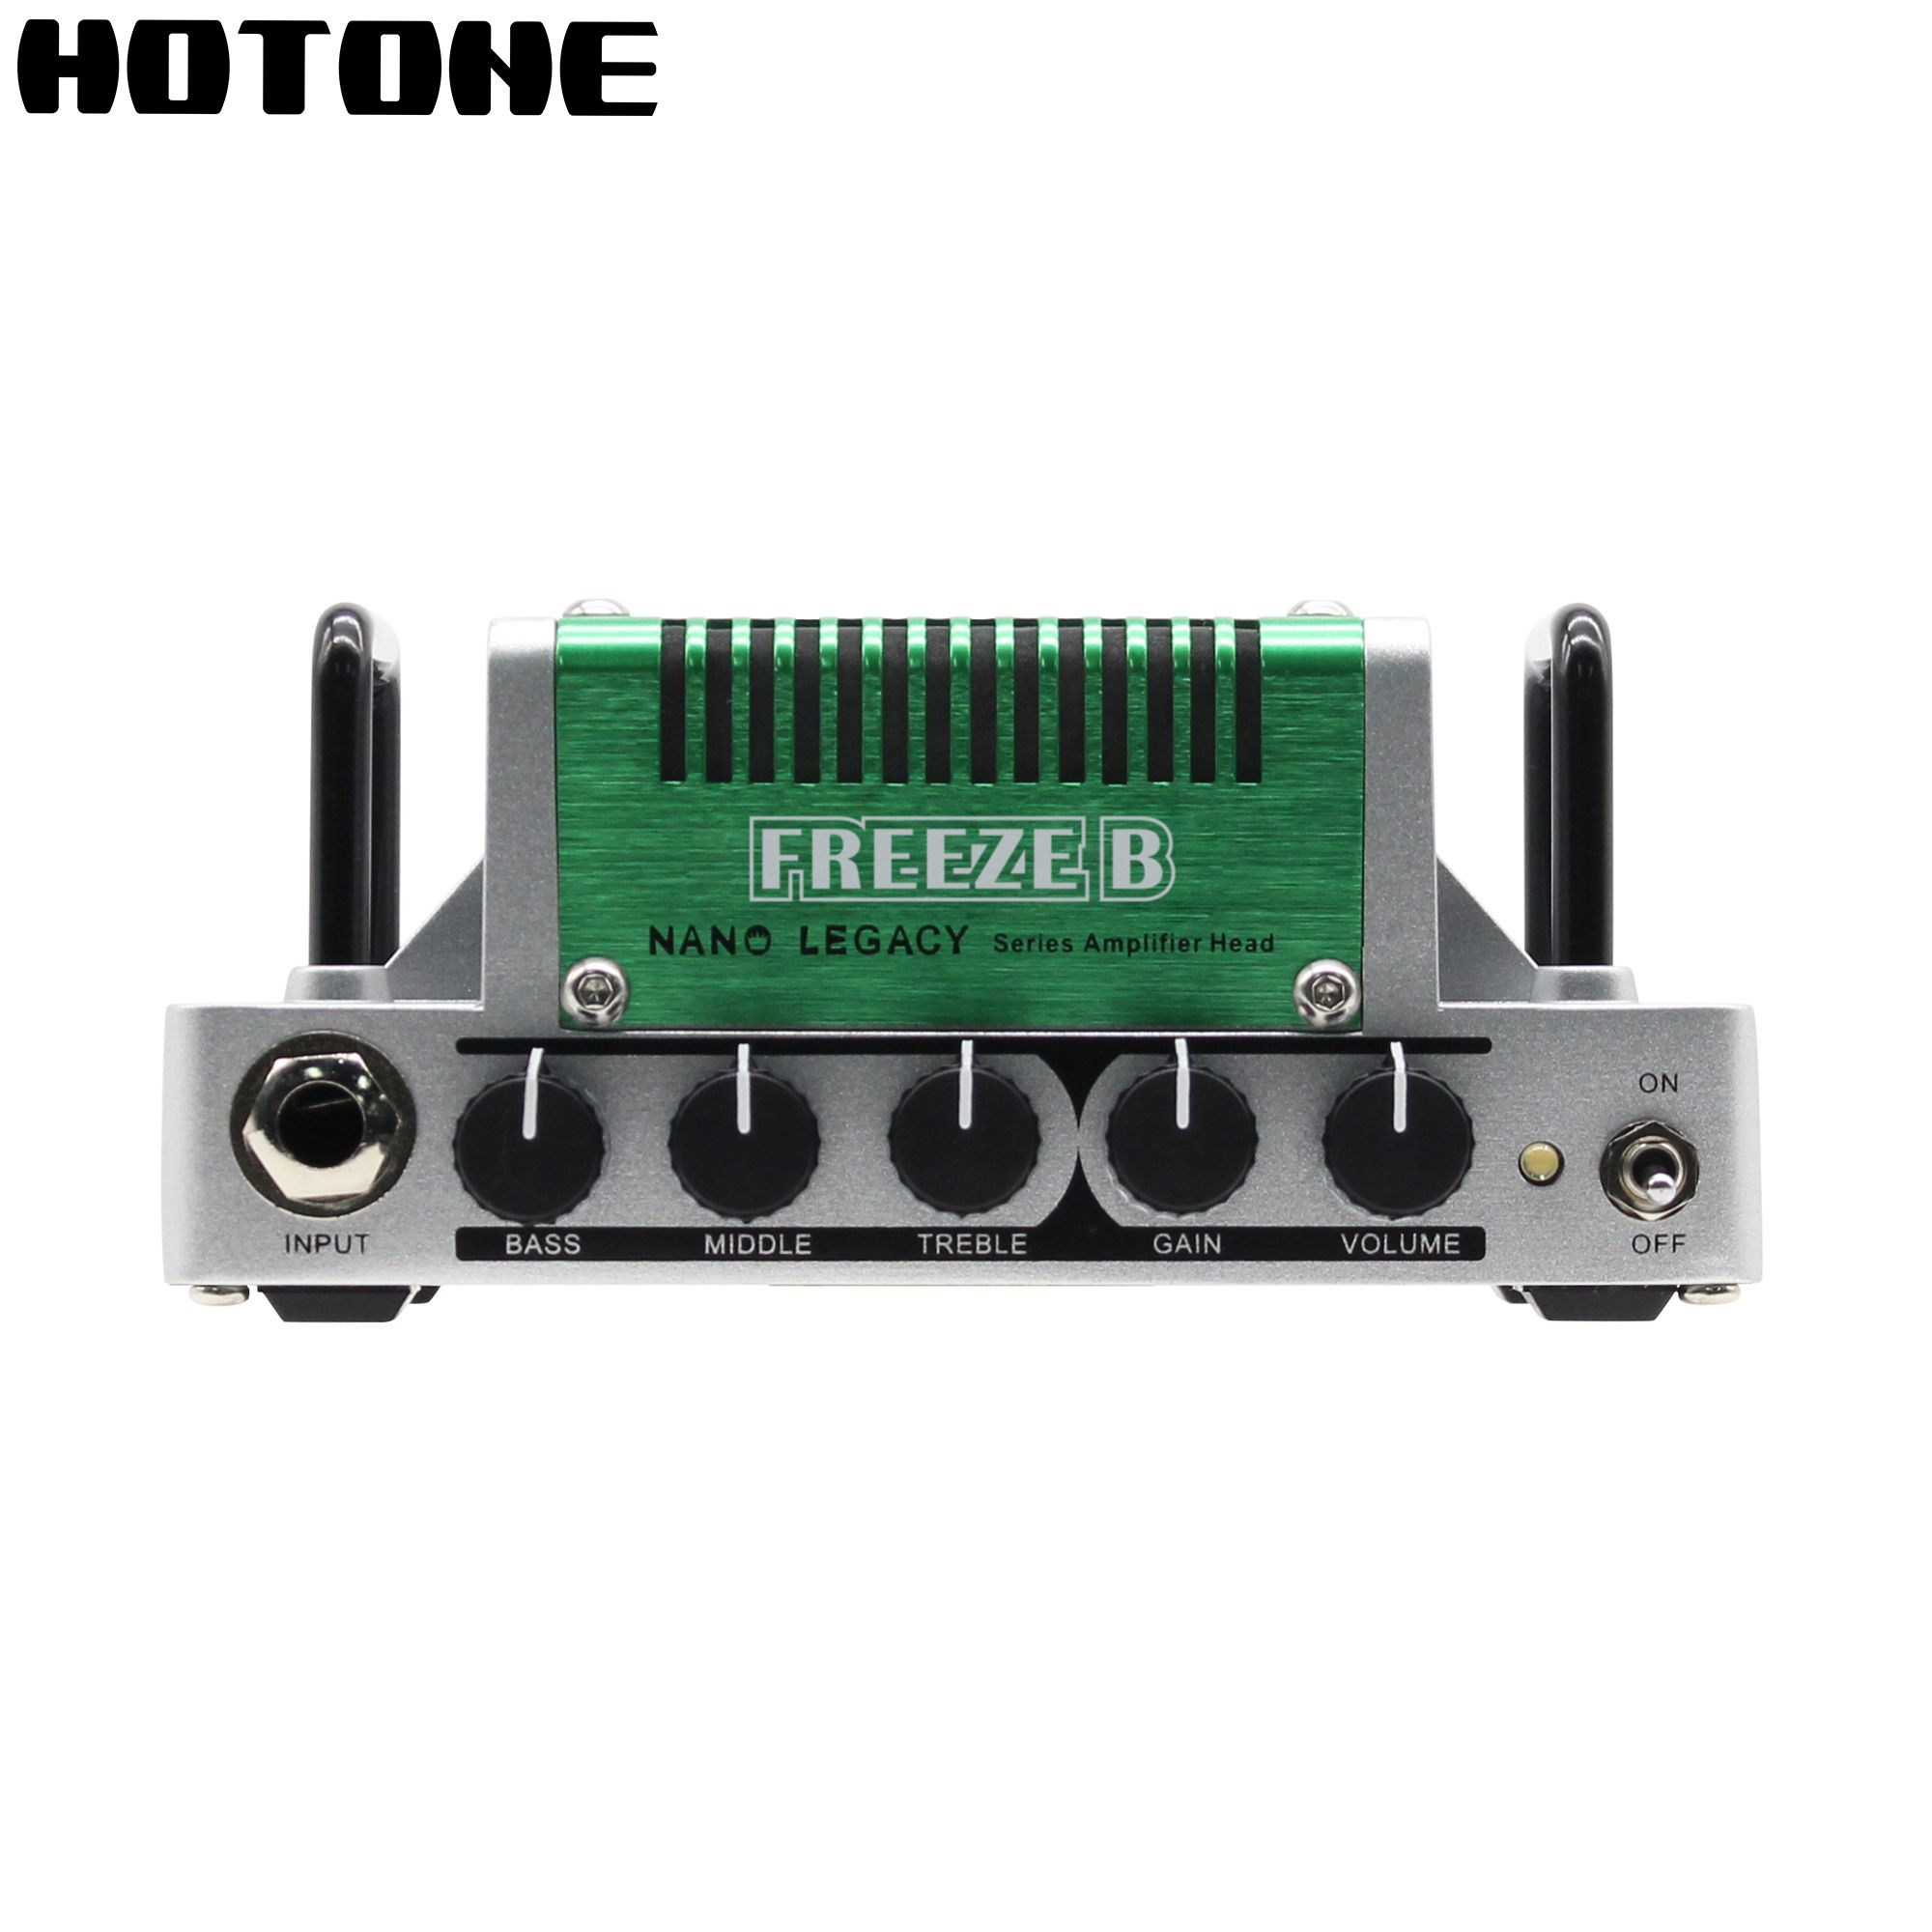 Hotone Freeze B Classic AB Amplifier Head 3 Band EQ 5 Watts Output Nano Legacy Series Inspired by UK-style High Gain AMP Head